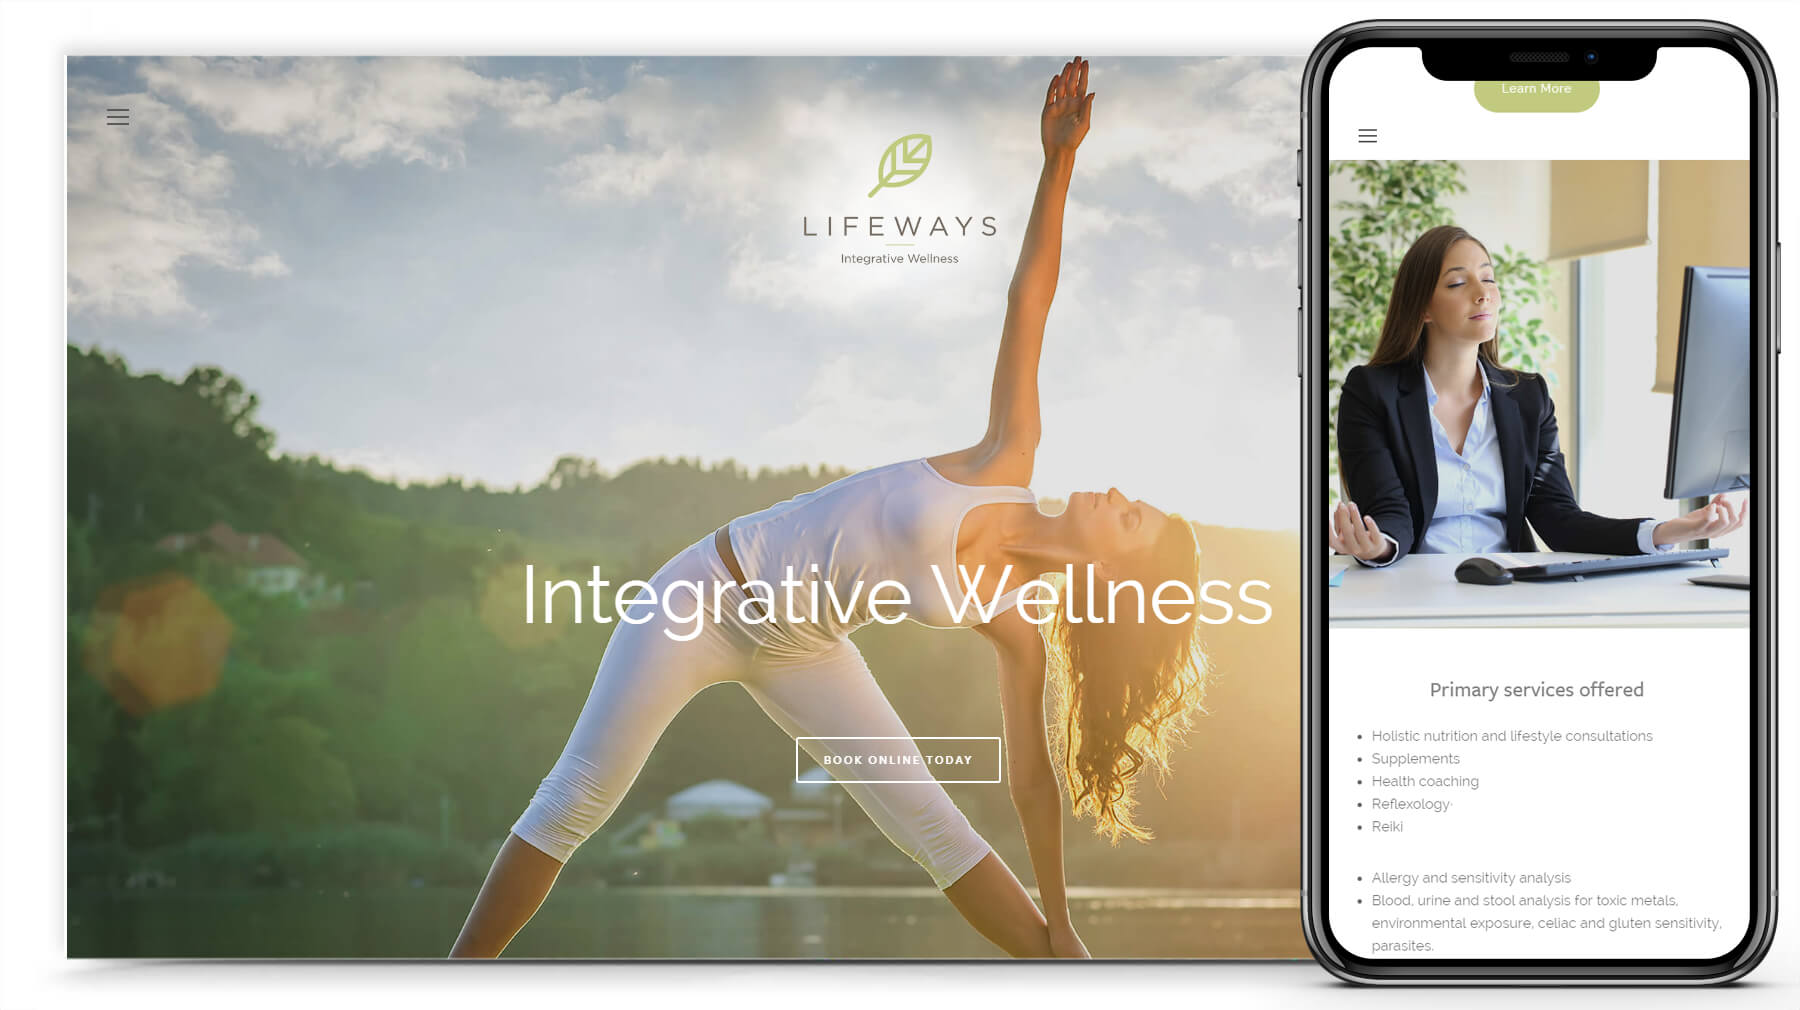 Lifeways Integrative Wellness